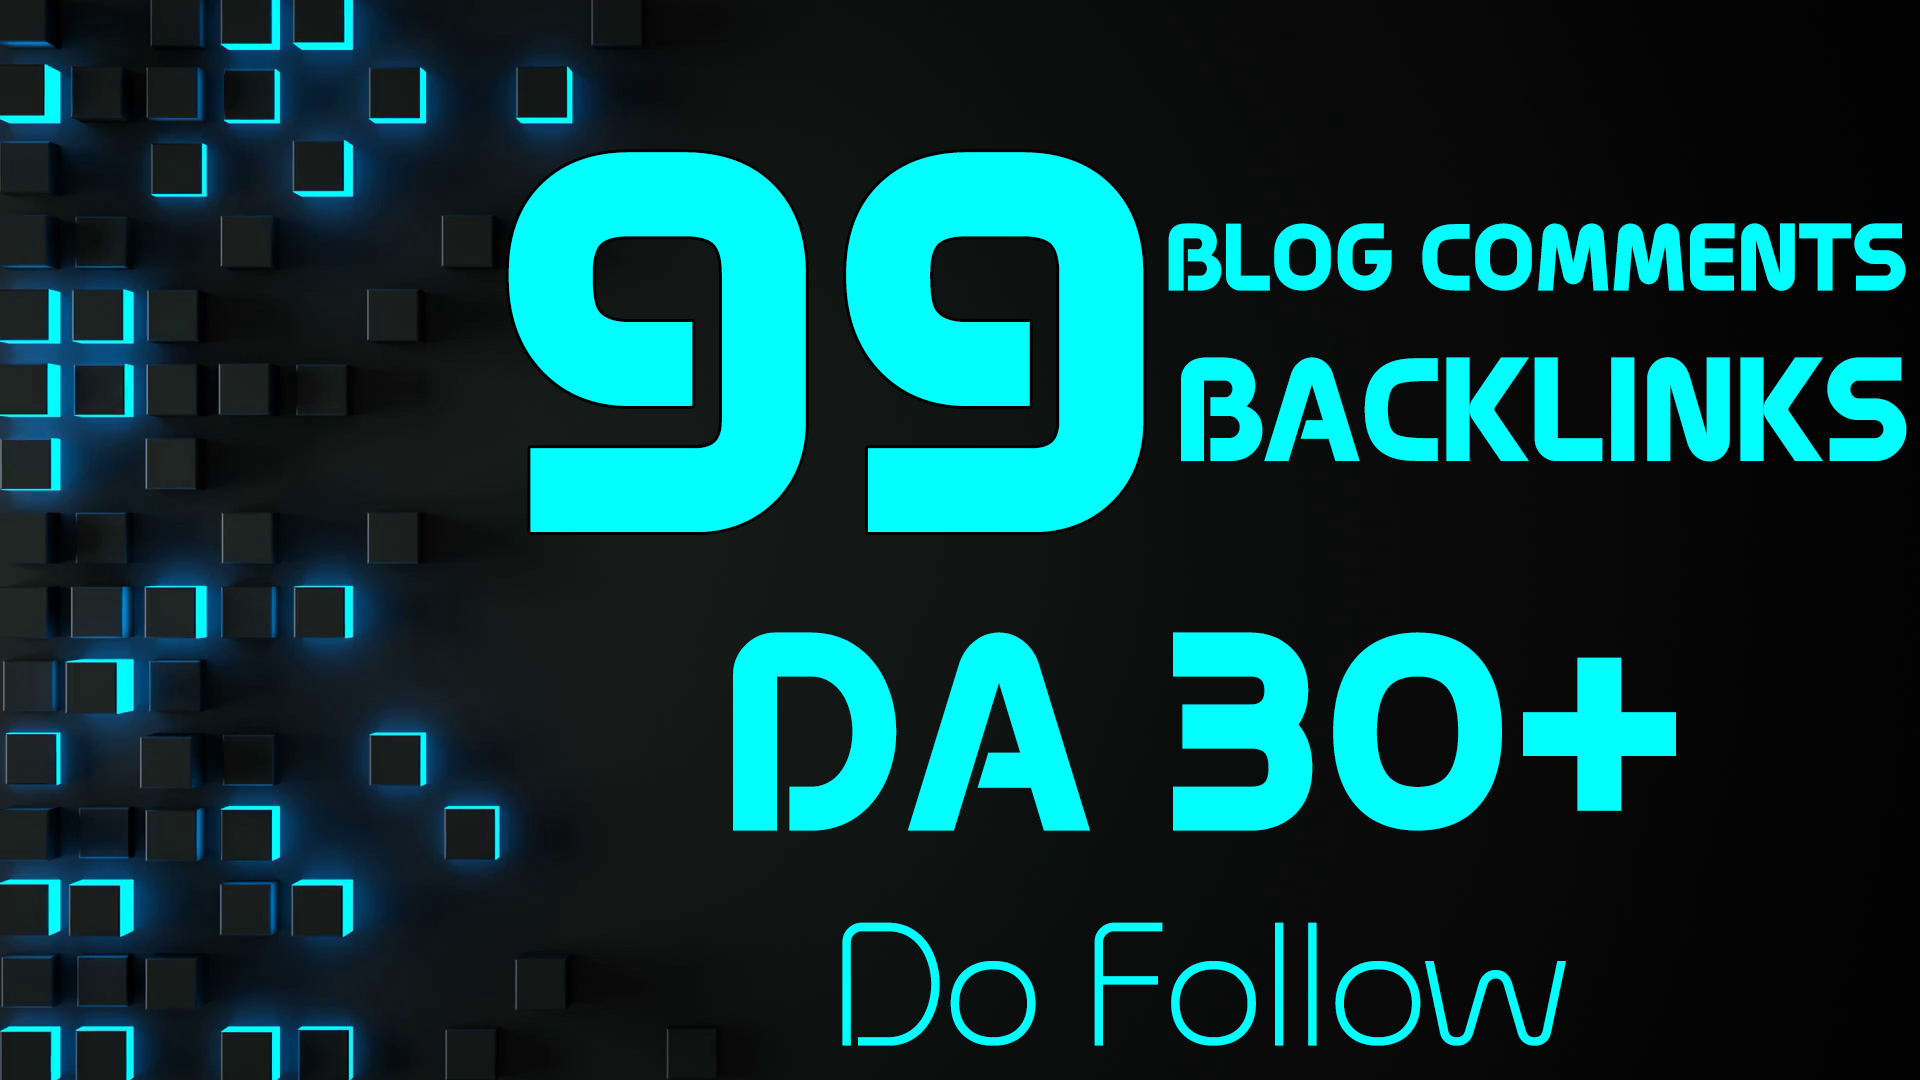 I Will Create 99 High Domain Authority And Page Authority Blog Comments